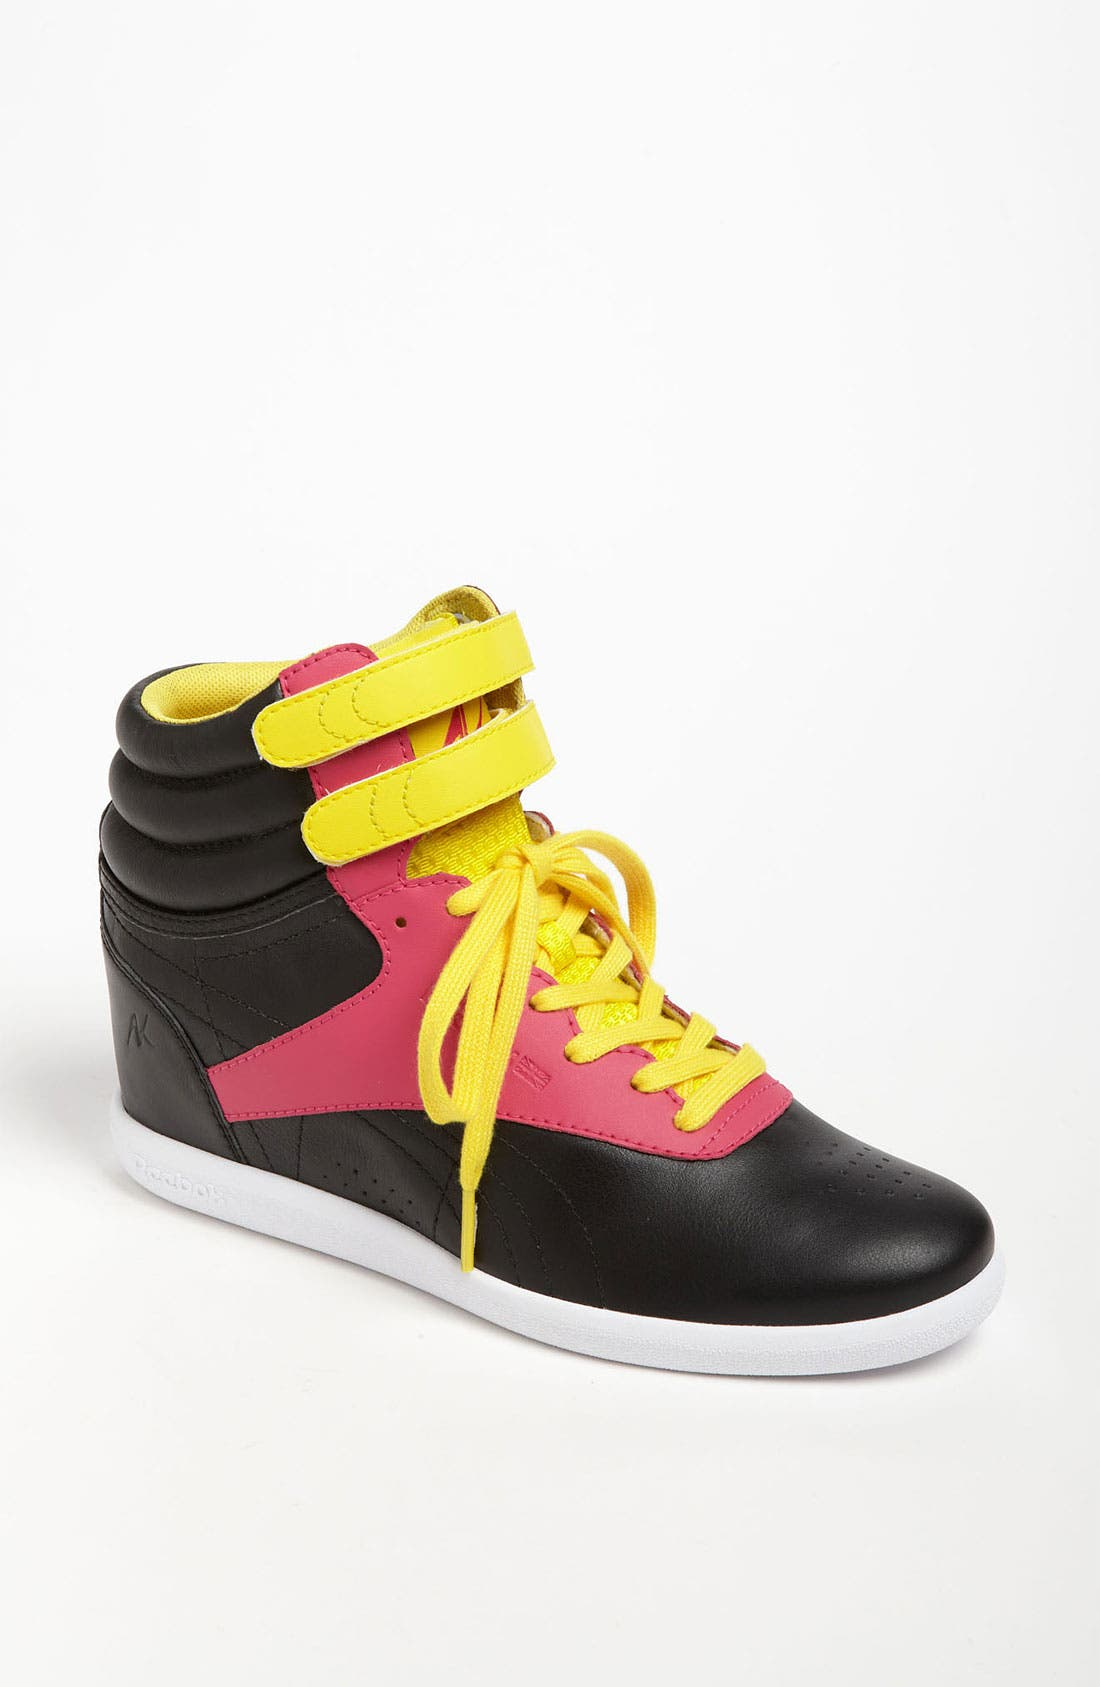 Main Image - Reebok 'Freestyle Hi Wedge A. Keys' Sneaker (Women)